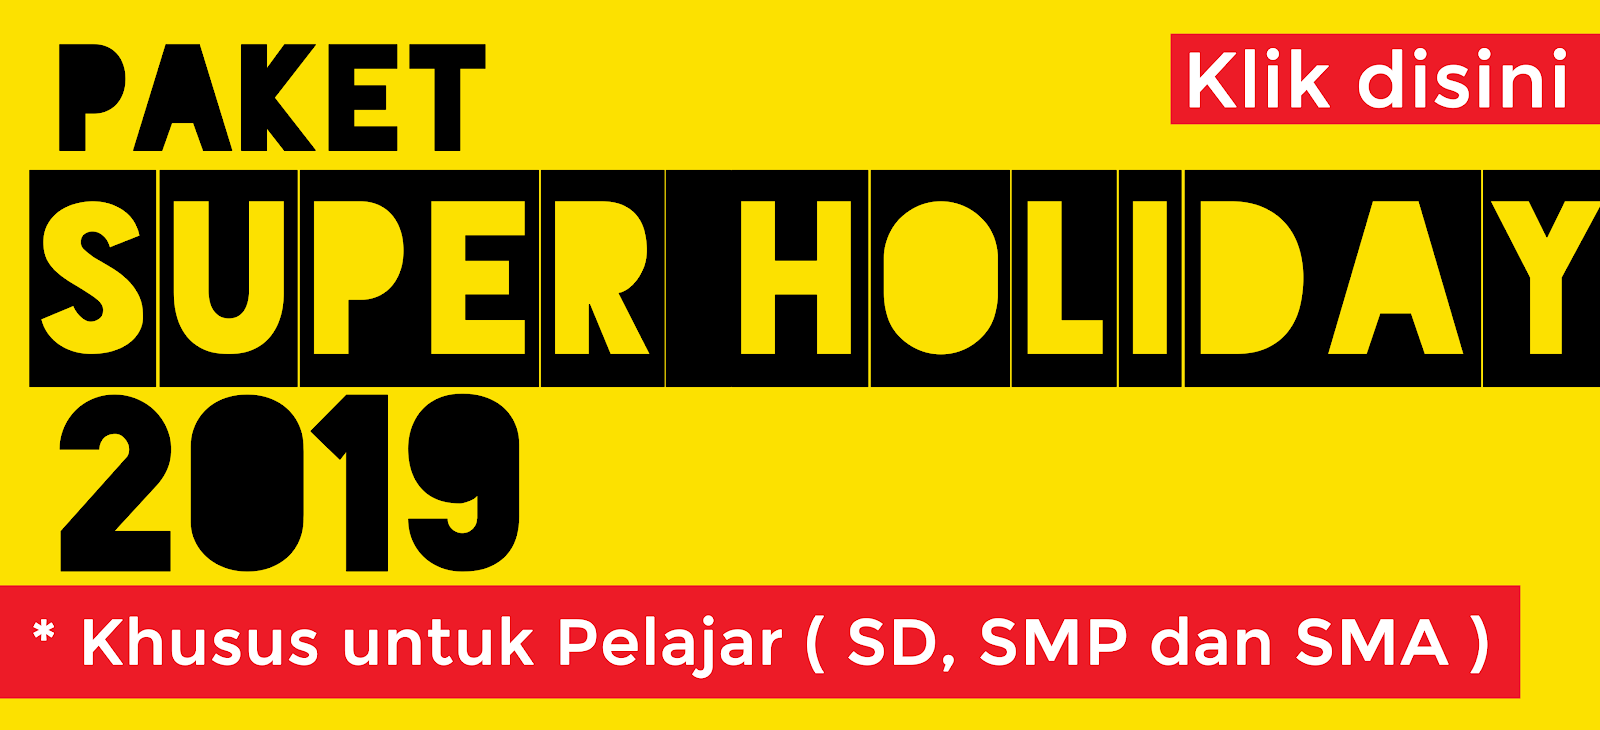 Paket Super Holiday 2019